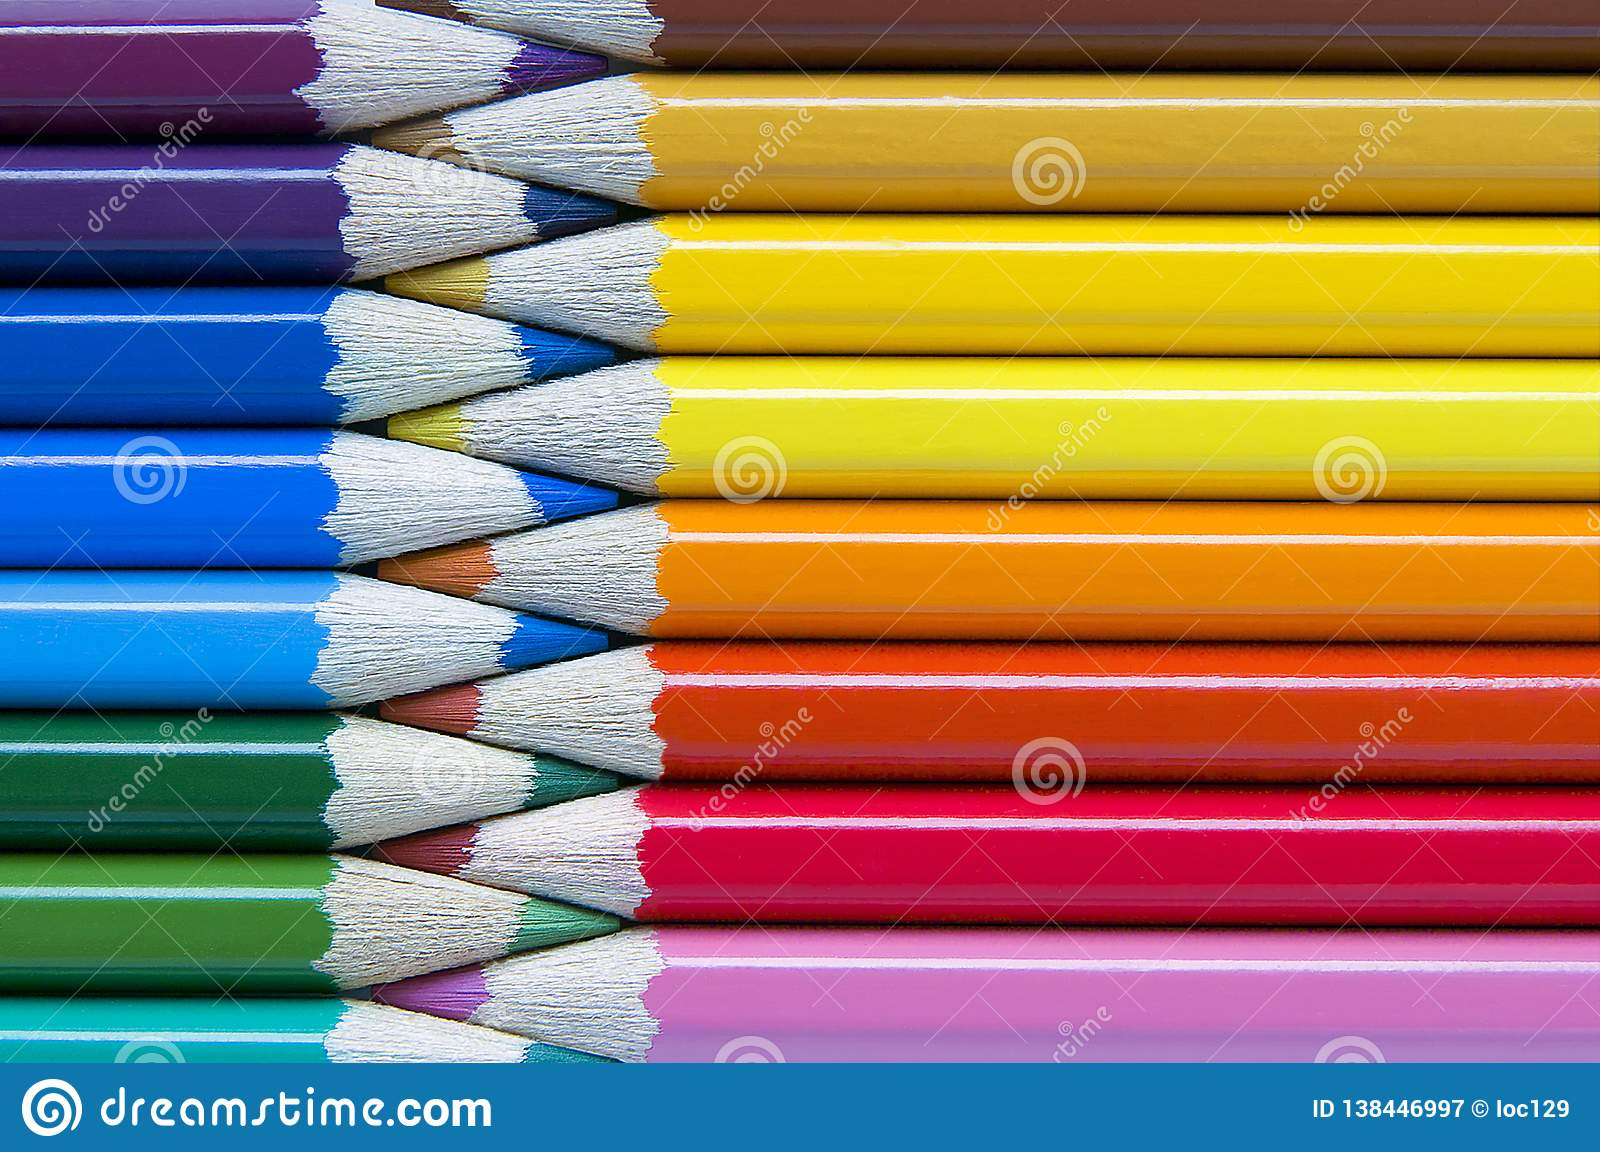 Color pencils background, zipper stylized. Warm and cold color